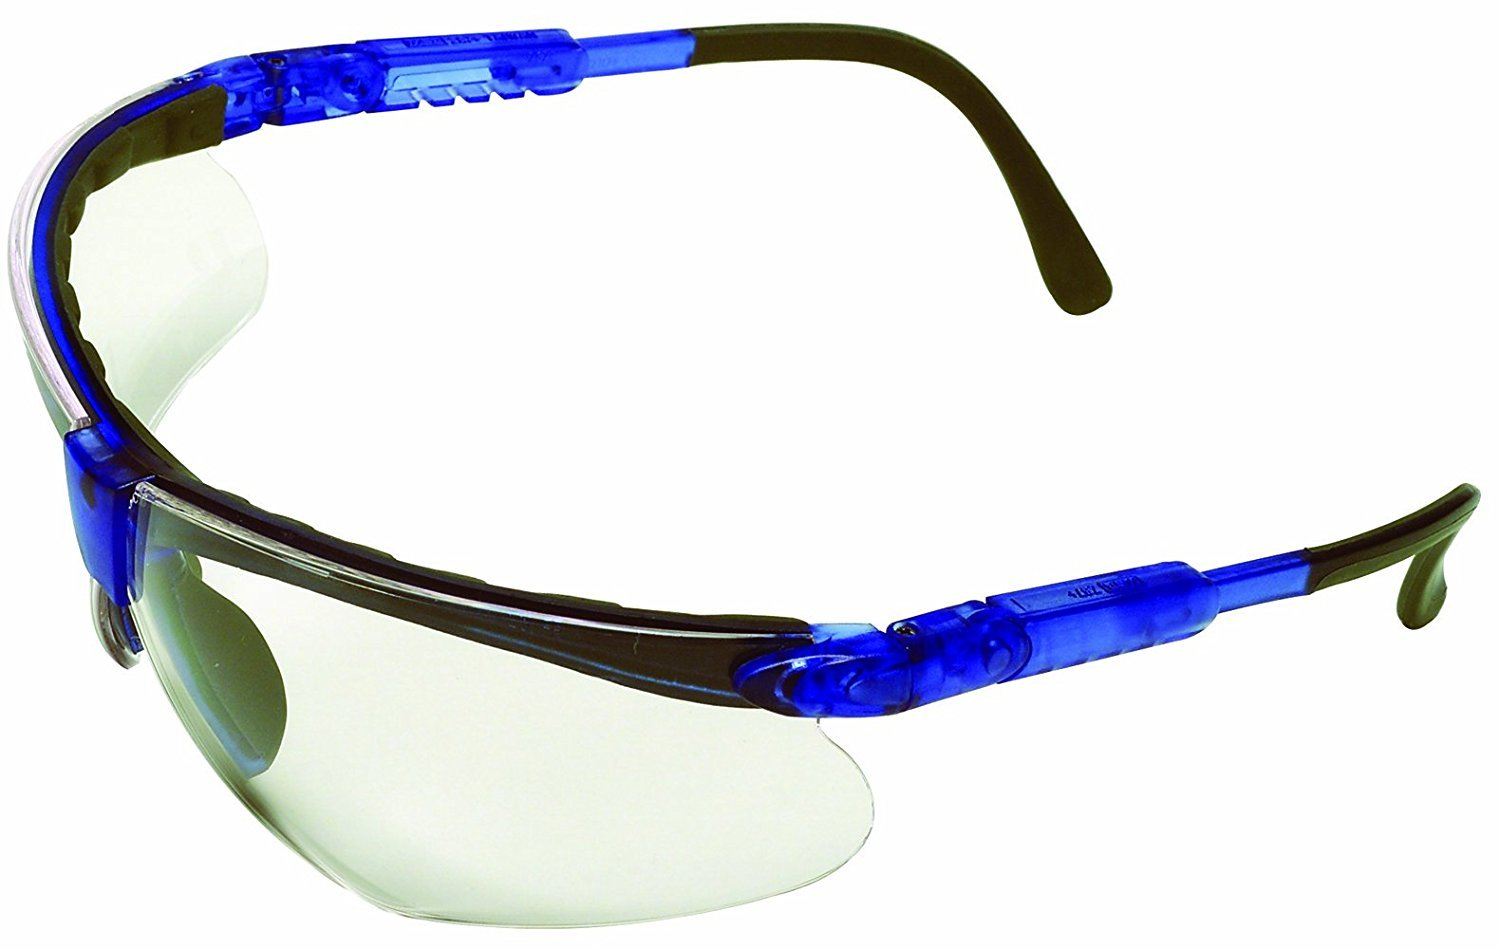 Bolle Safety 286-41080 Rush Plus Series Safety Glasses, Clear Polycarbonate Lenses, Red-Grey Temple by Bolle' Safety B01MZ102BS